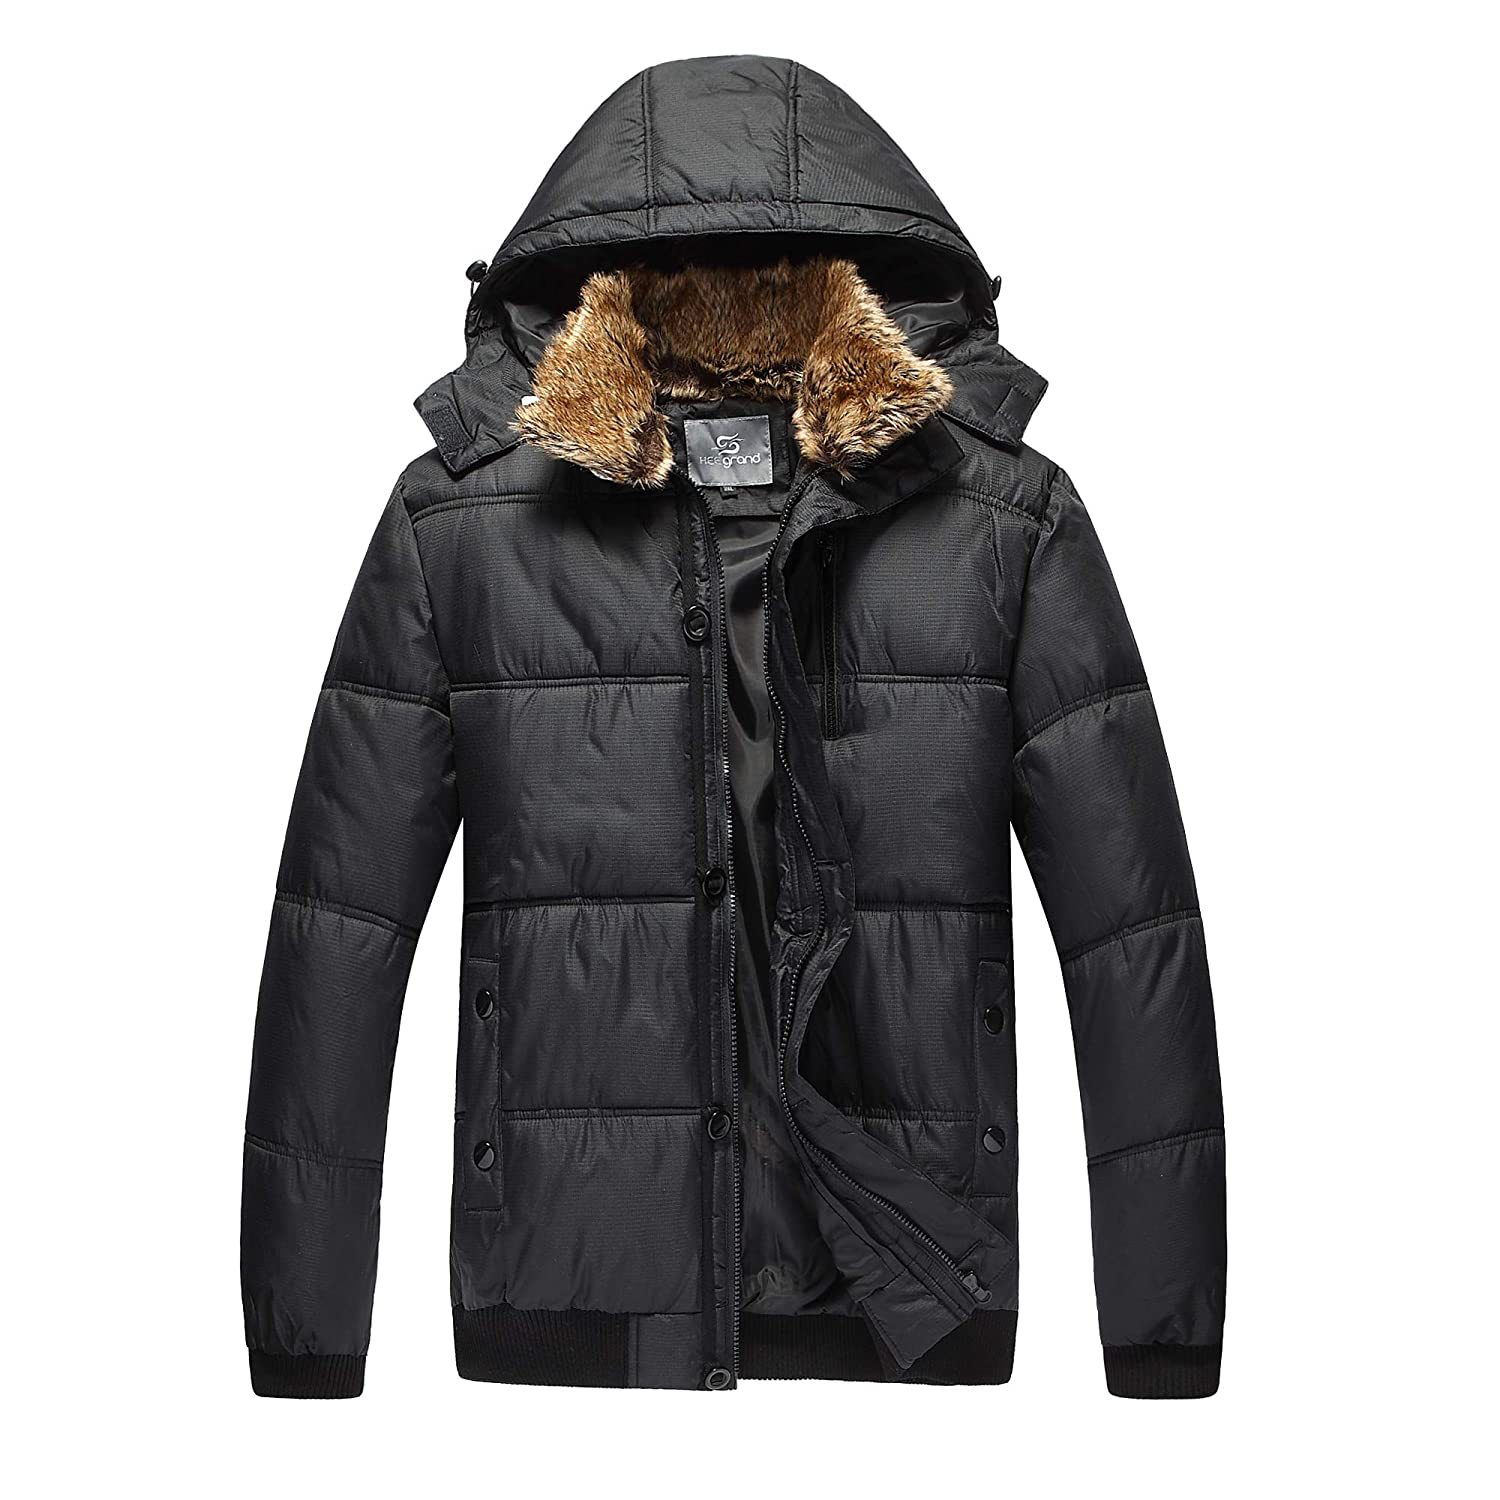 Outdoor Thick Down Jacket with Removable Faux Fur Collar Hood Henoo Mens Hooded Winter Jacket Black /& White